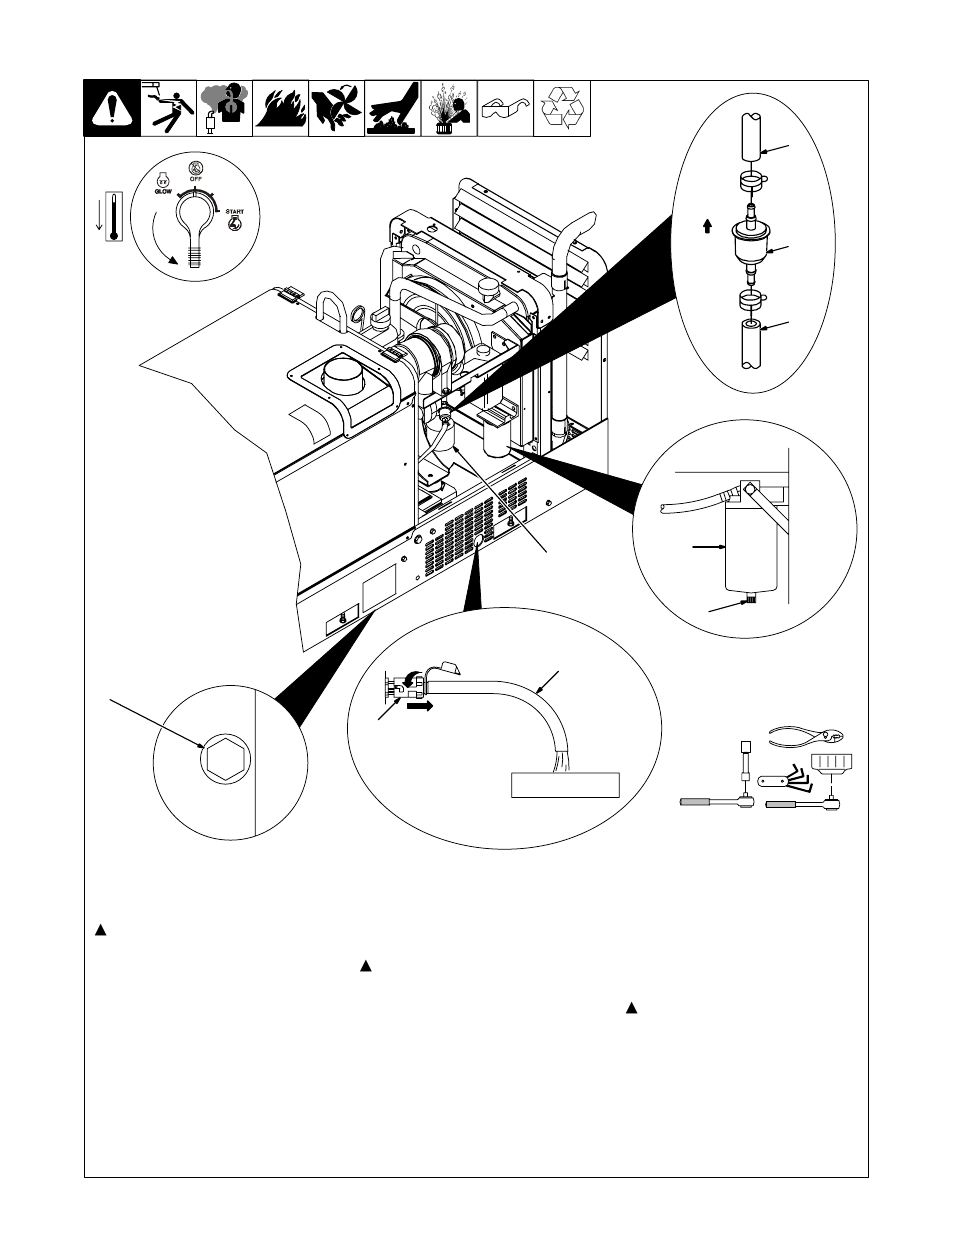 medium resolution of 5 servicing engine lubrication and fuel systems miller electric trailblazer pro 350 user manual page 33 68